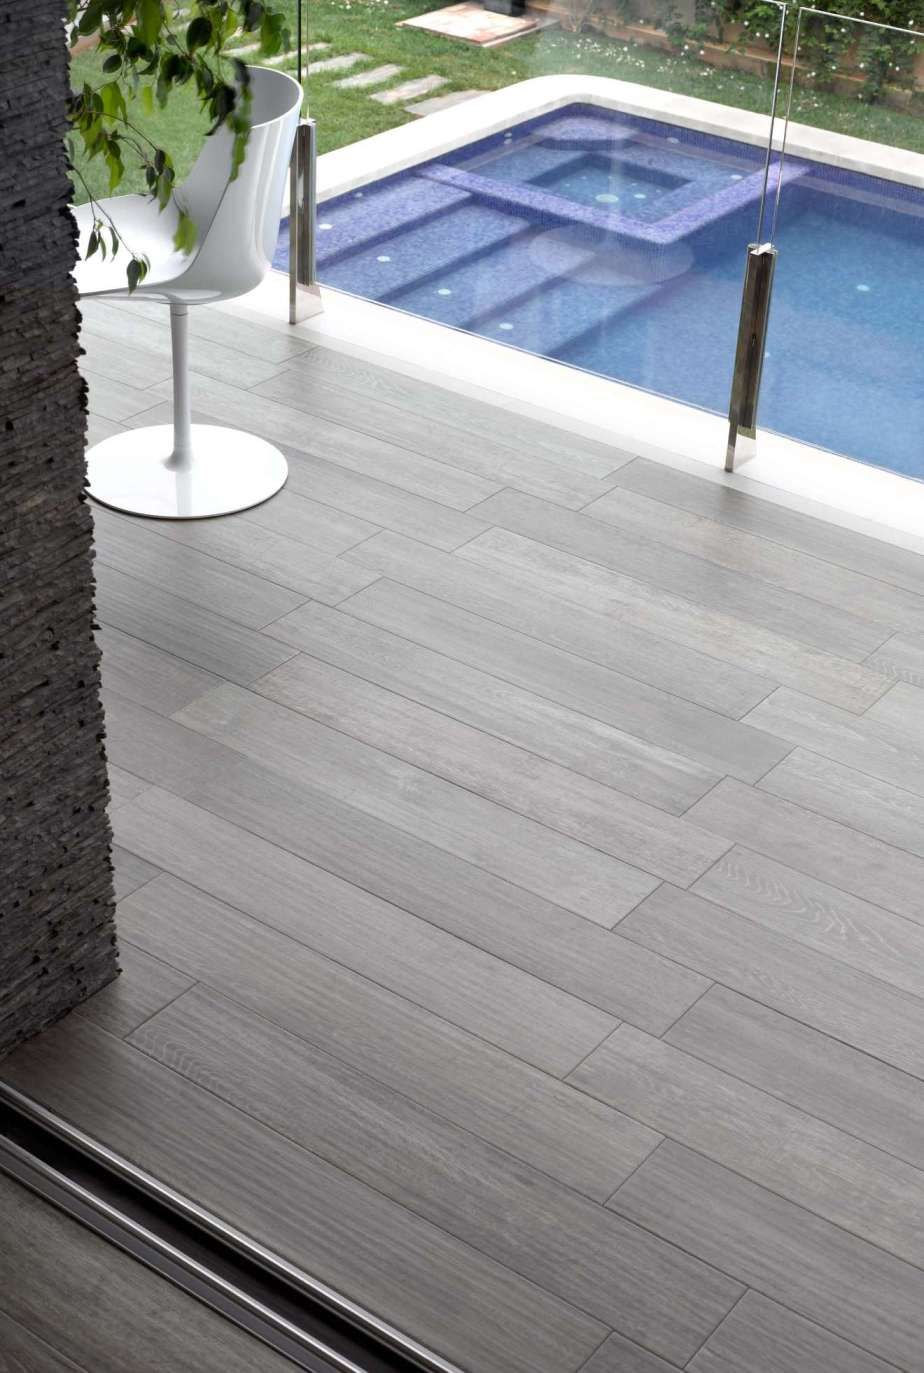 Outdoor Timber Tiles Timber Look Tiles Are A Great Way To Seamlessly Connect Indoors To